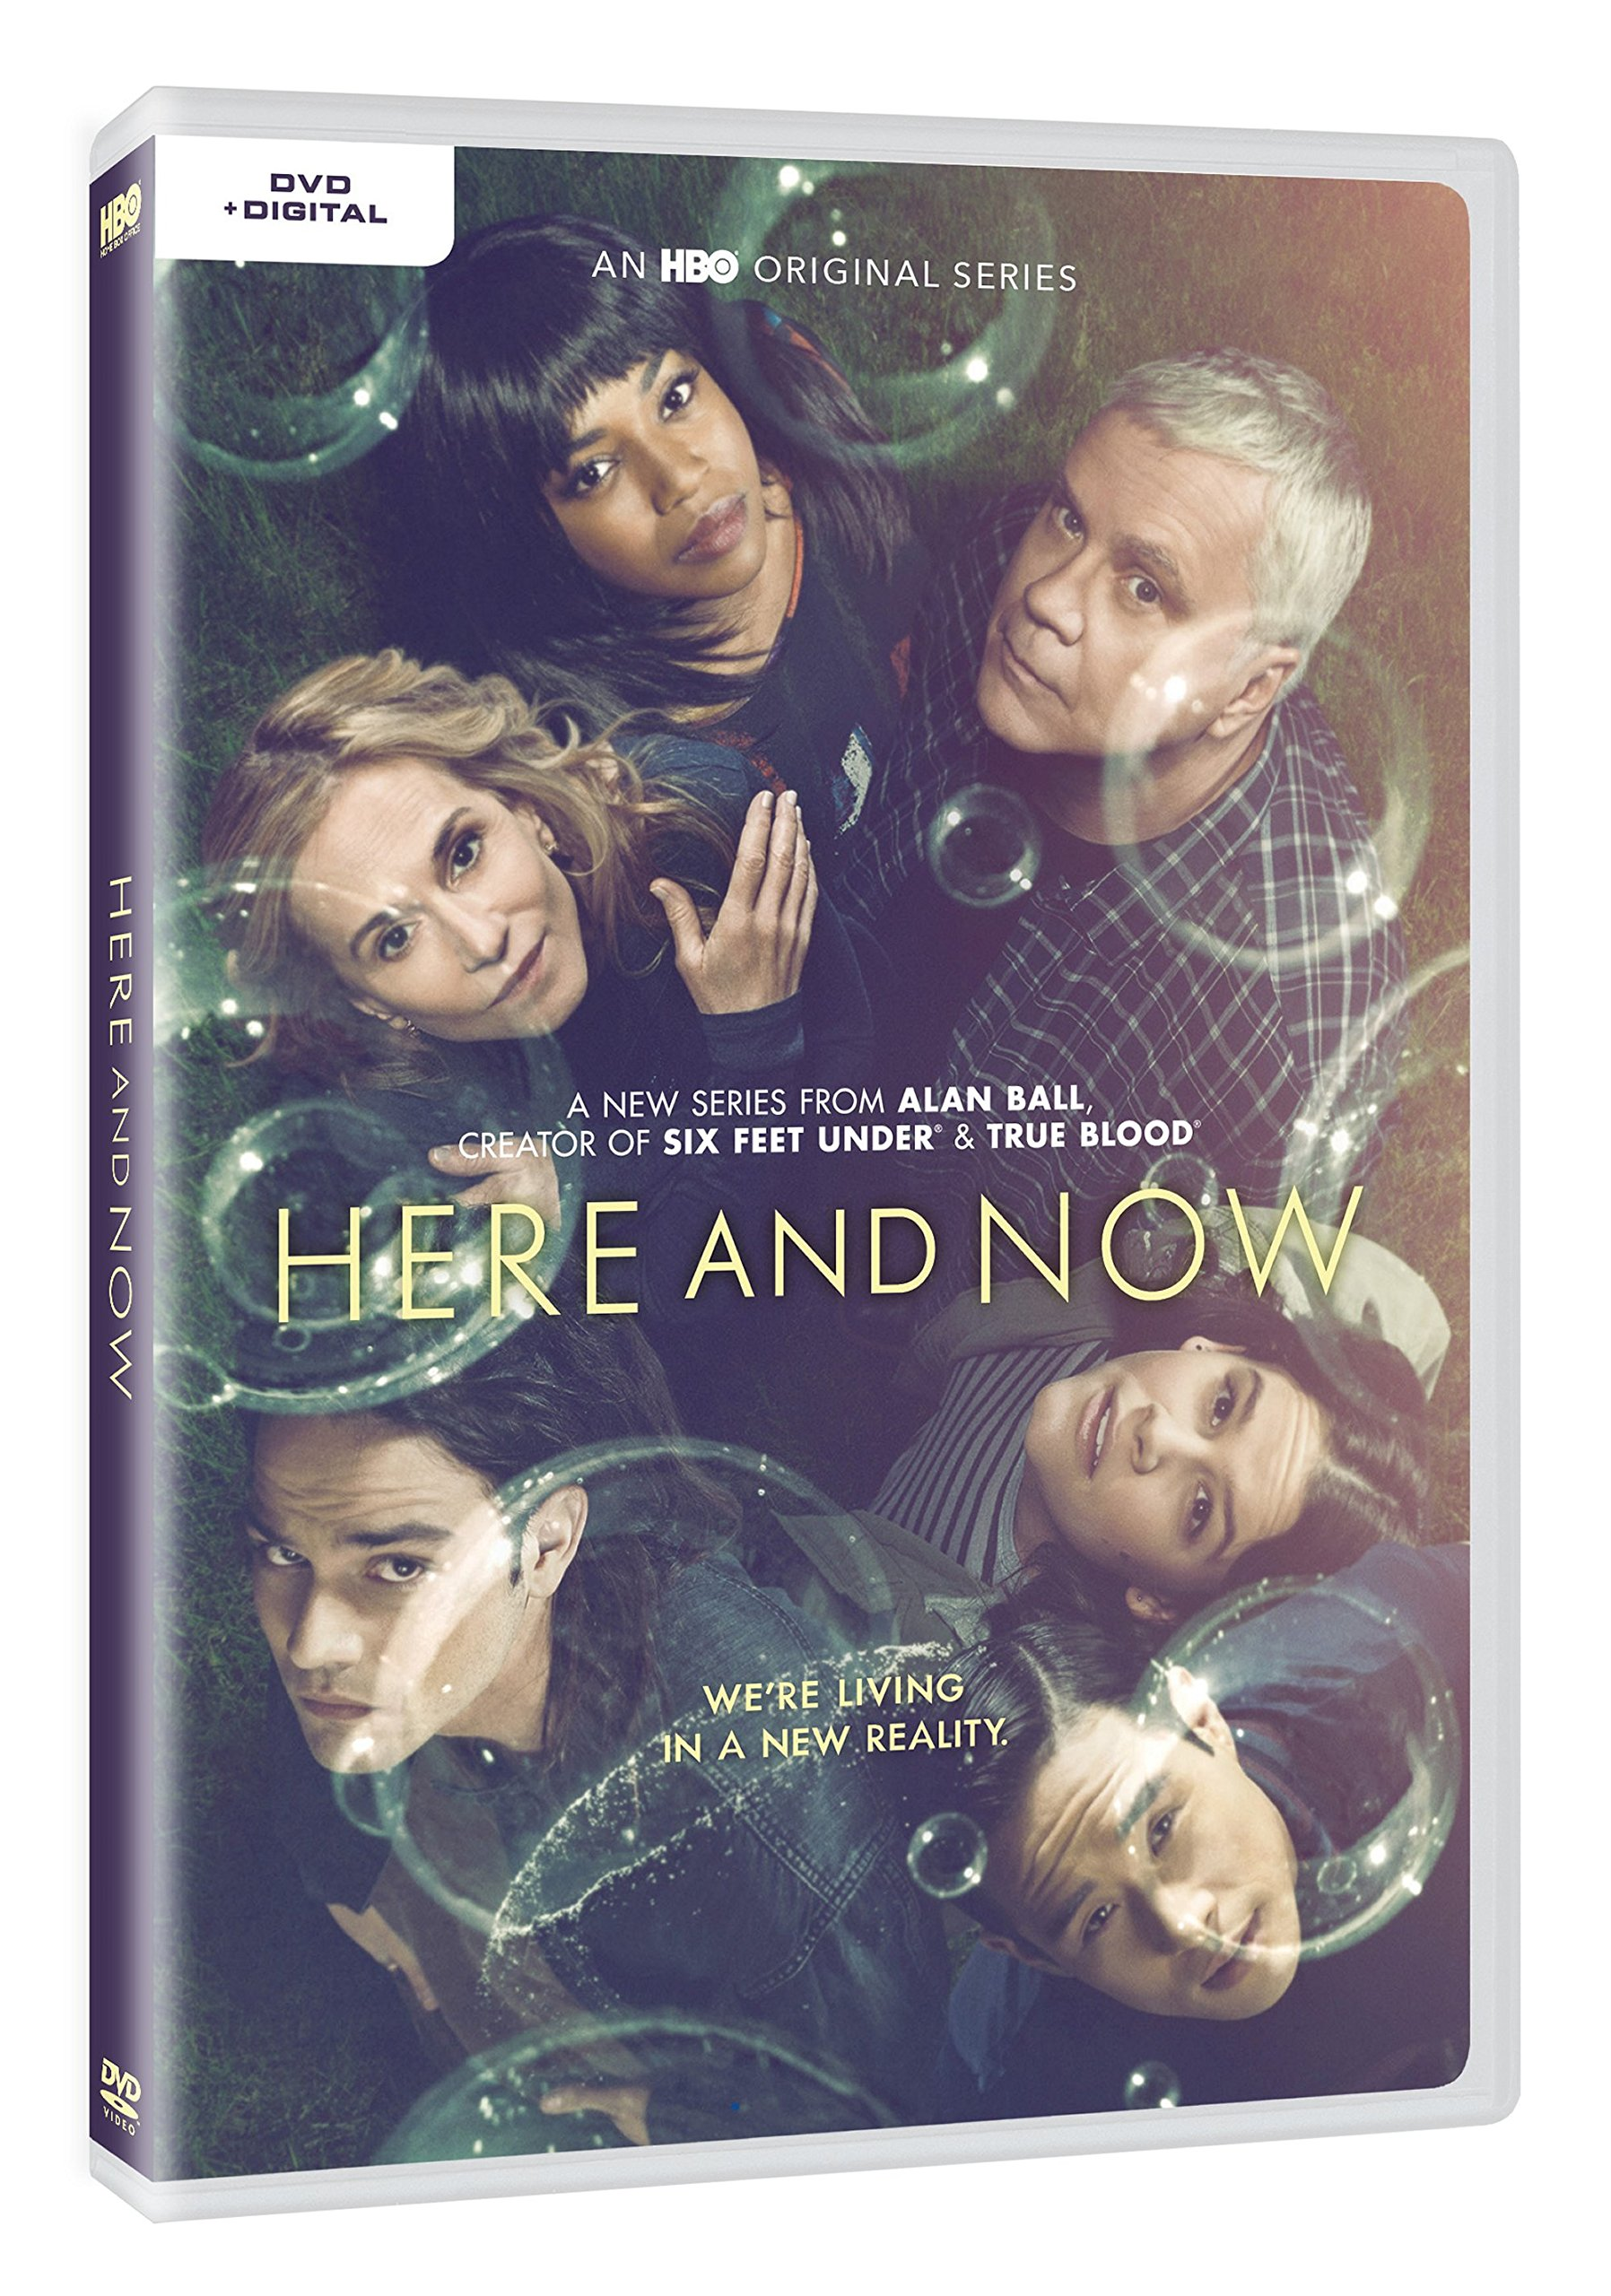 DVD : Here And Now: The Complete First Season (Boxed Set, Ultraviolet Digital Copy, Digitally Mastered in HD, 4PC)